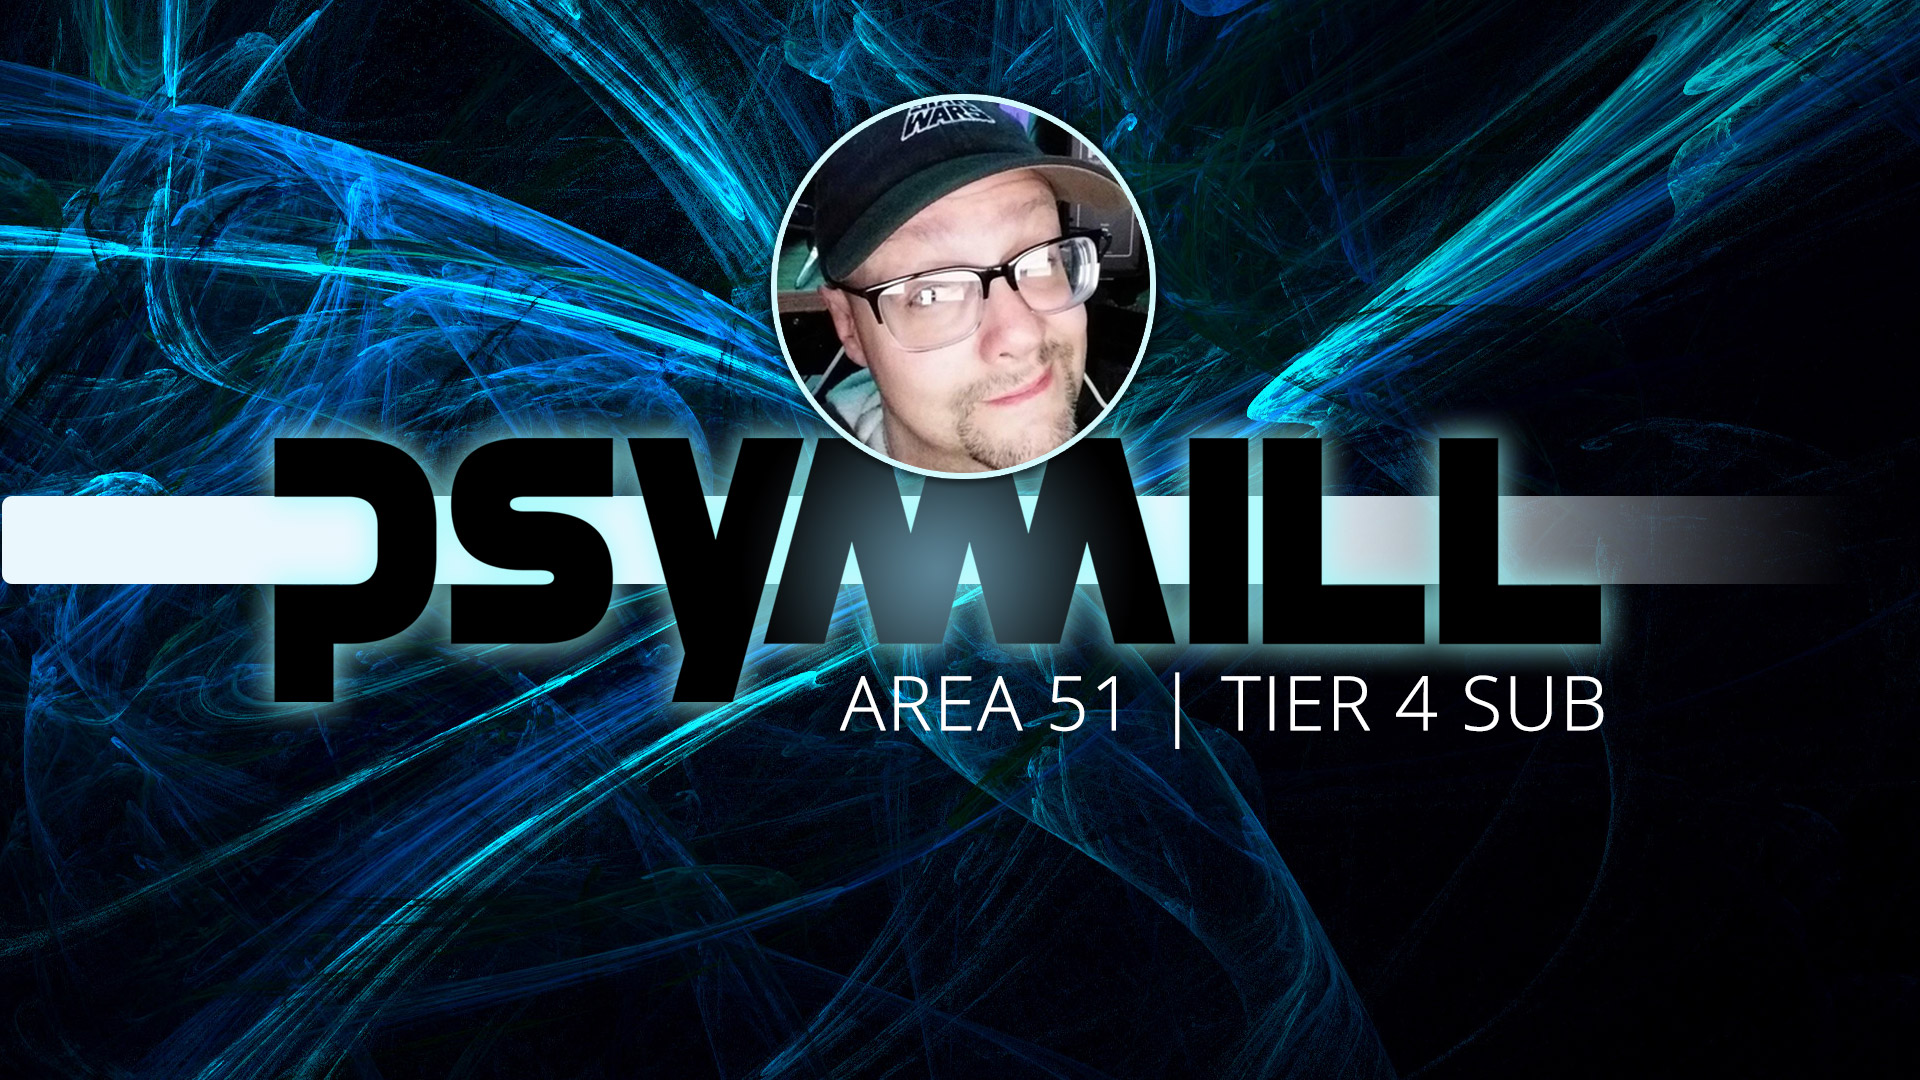 Area 51 Tier 4 Sub for Elite PSYMILL Subscribers